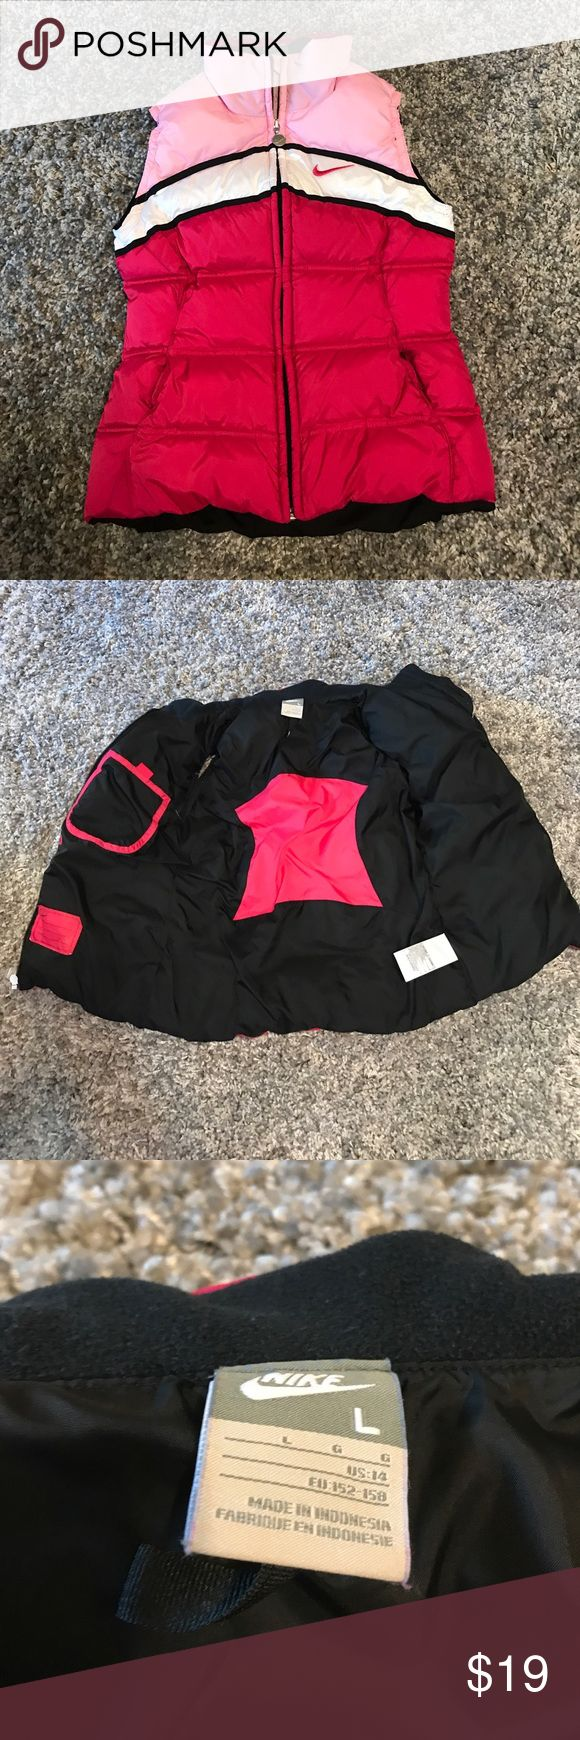 Nike Puffer Large Kids Girls pink Vest Super cute girls Nike vest! Reasonable offers accepted! Bundle for a private discount! Nike Jackets & Coats Vests